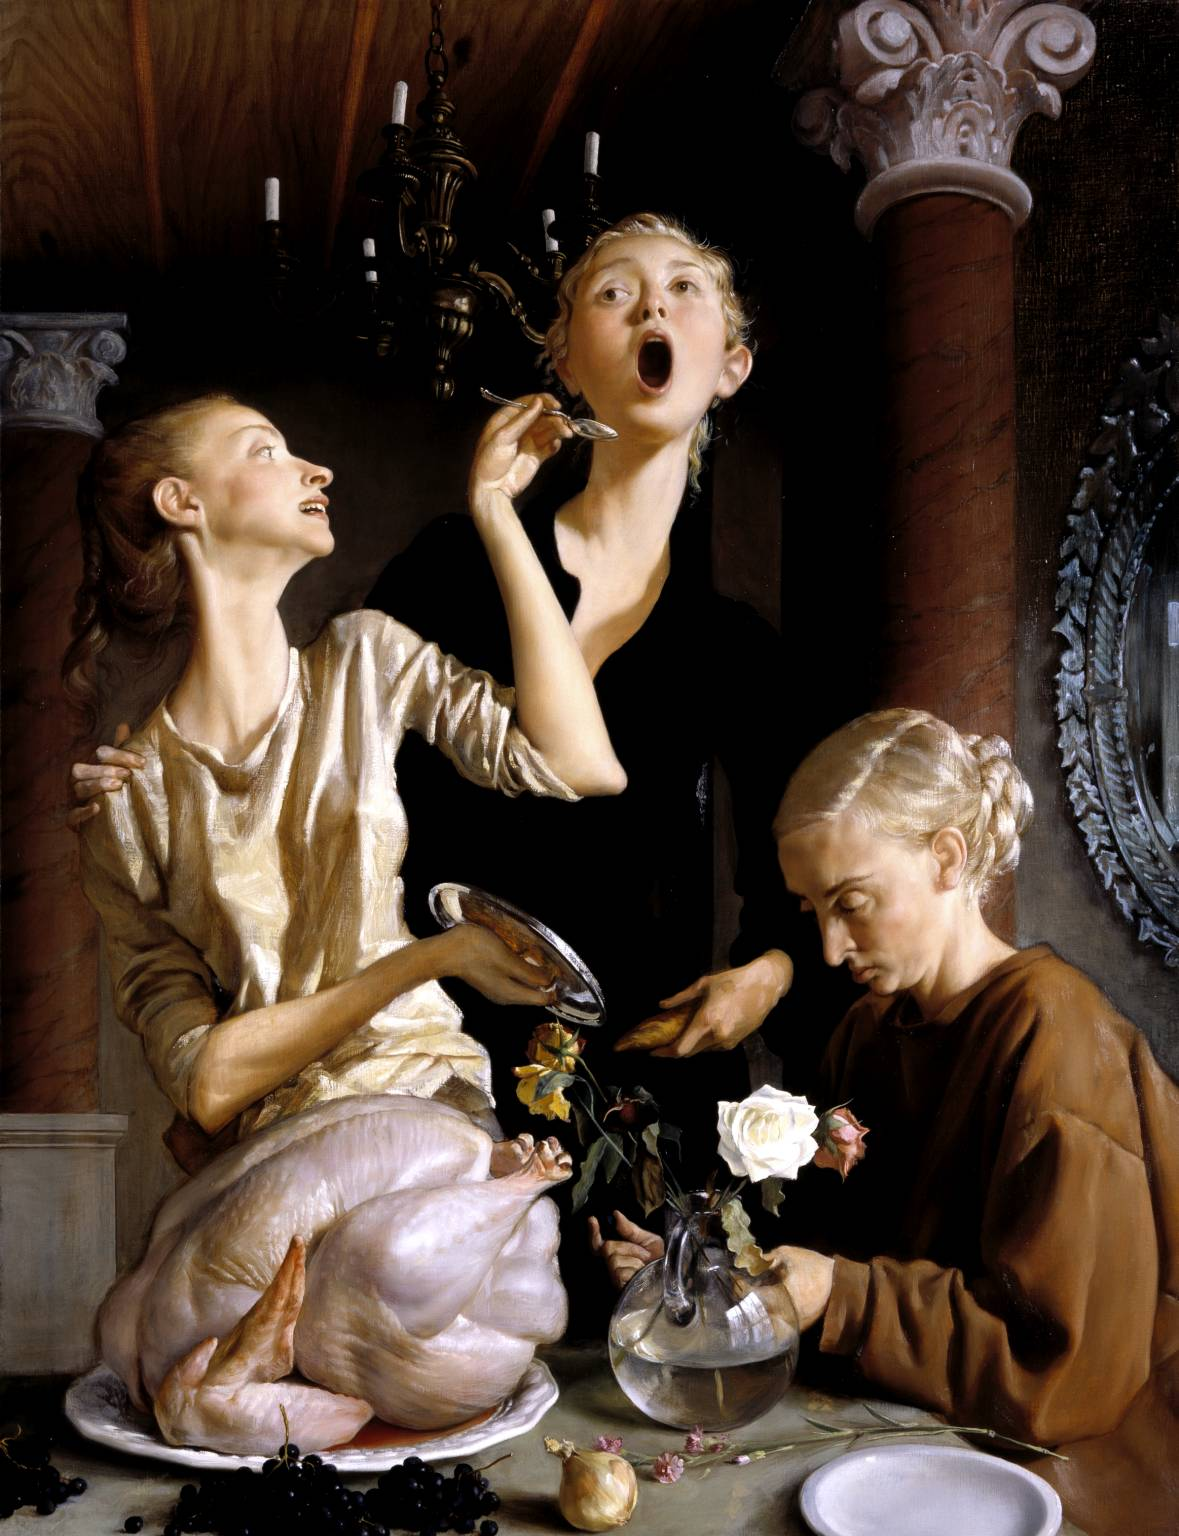 John Currin, Thanksgiving, 2003. Our perverse Norman Rockwell.